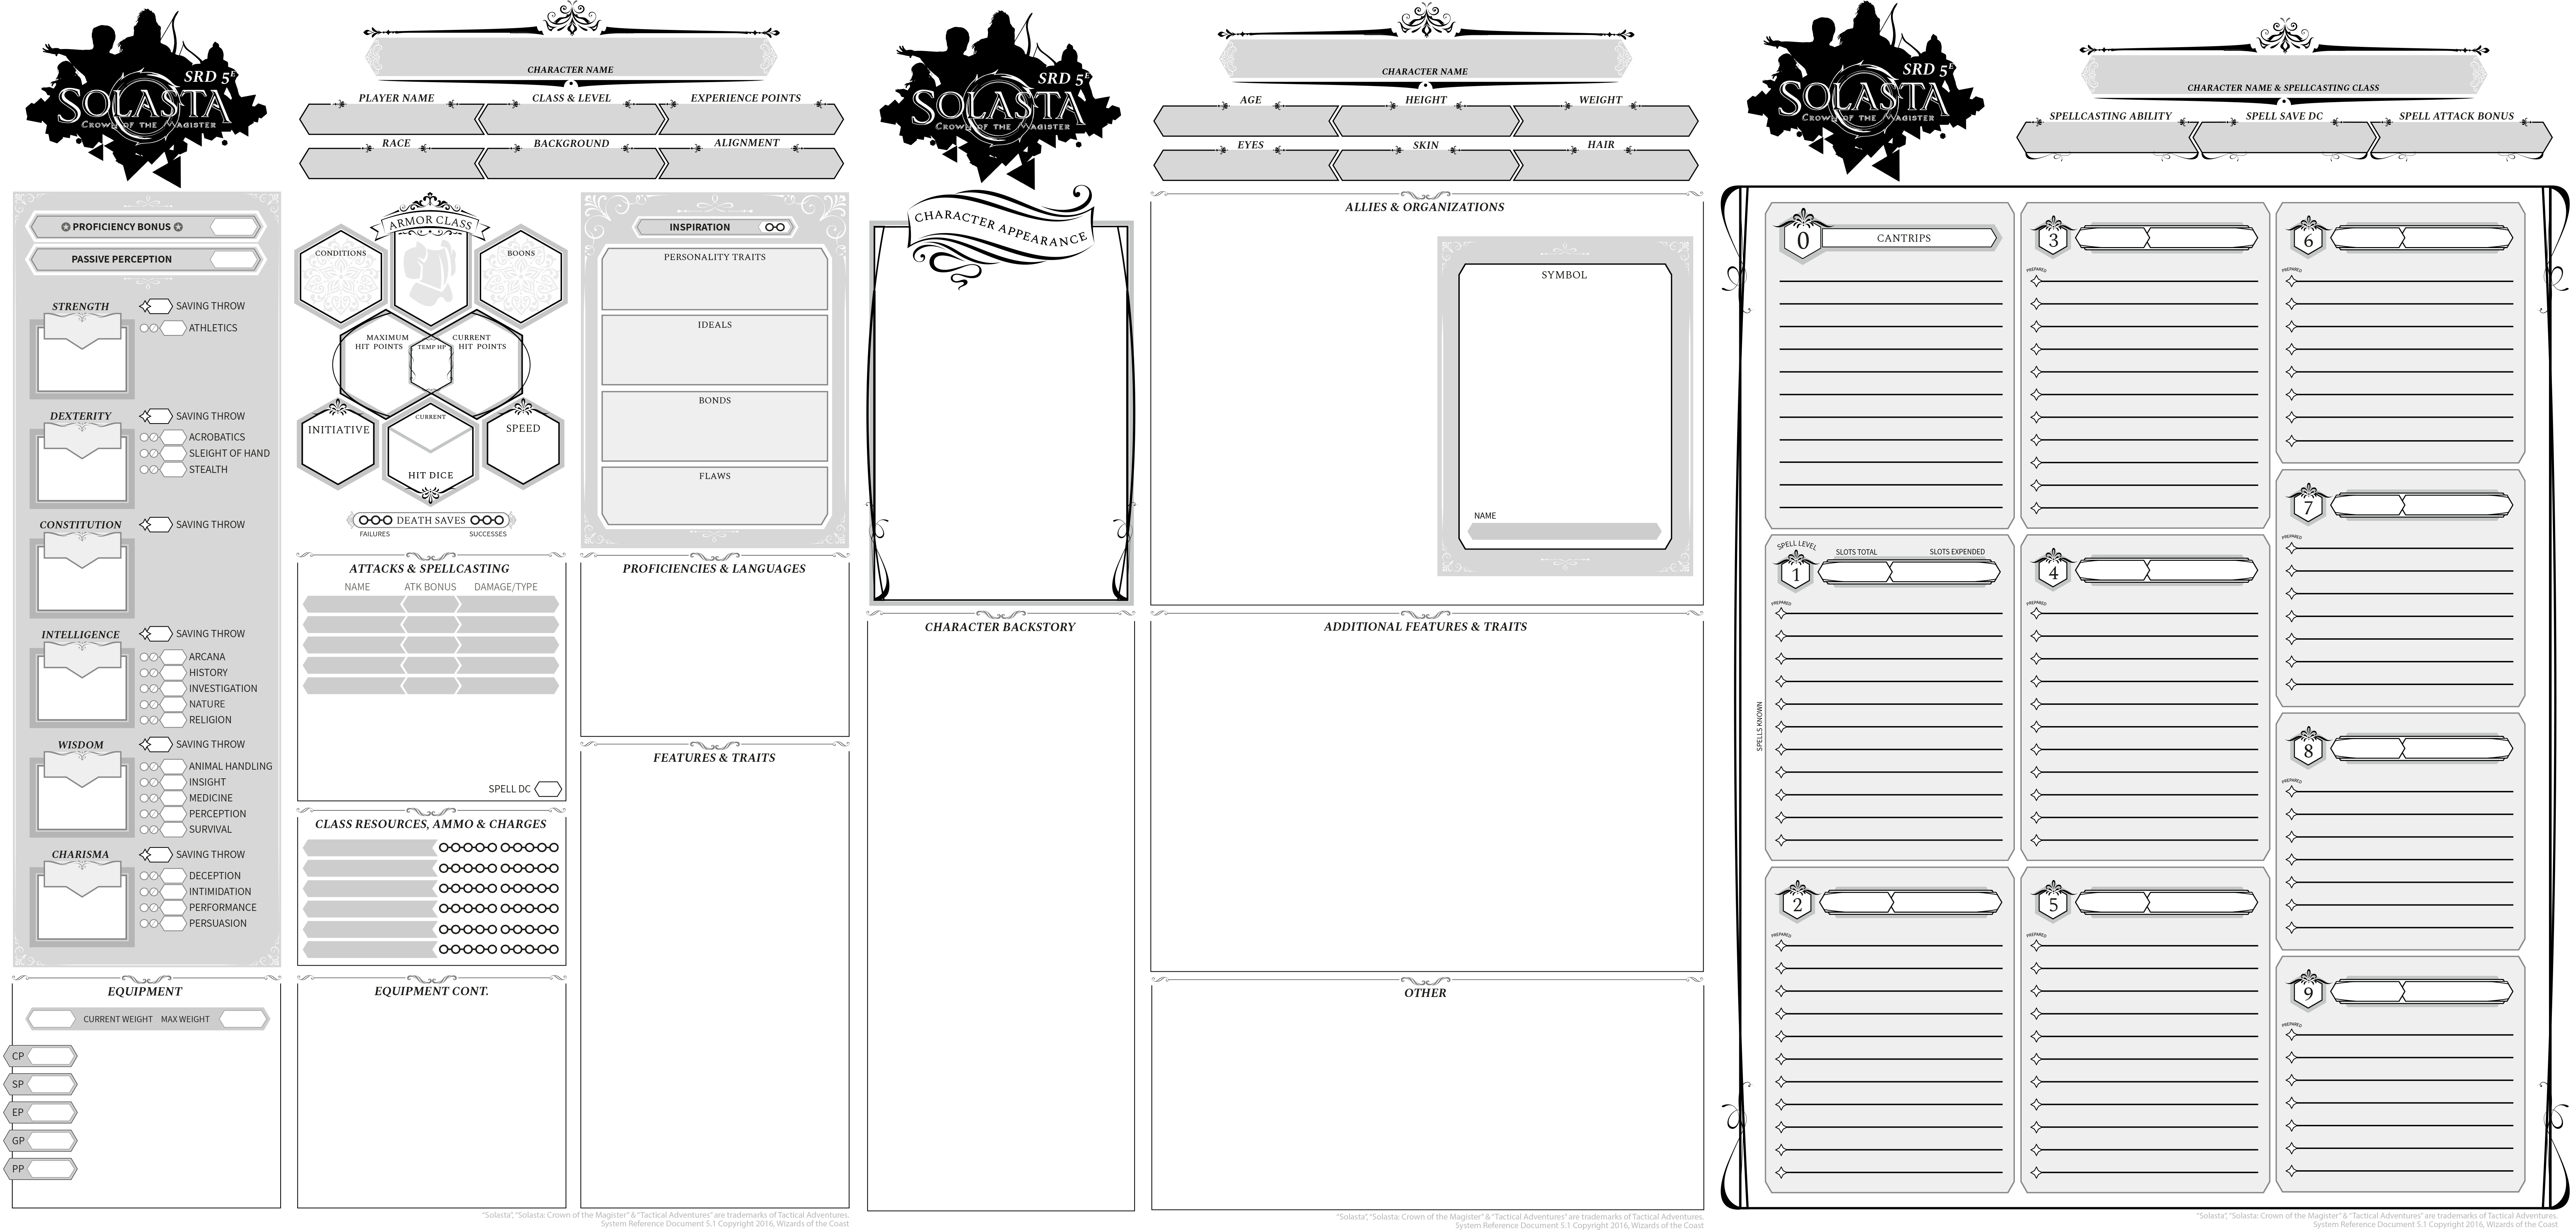 5E Solasta 5e Character Sheets (Tabletop) for Gen Con